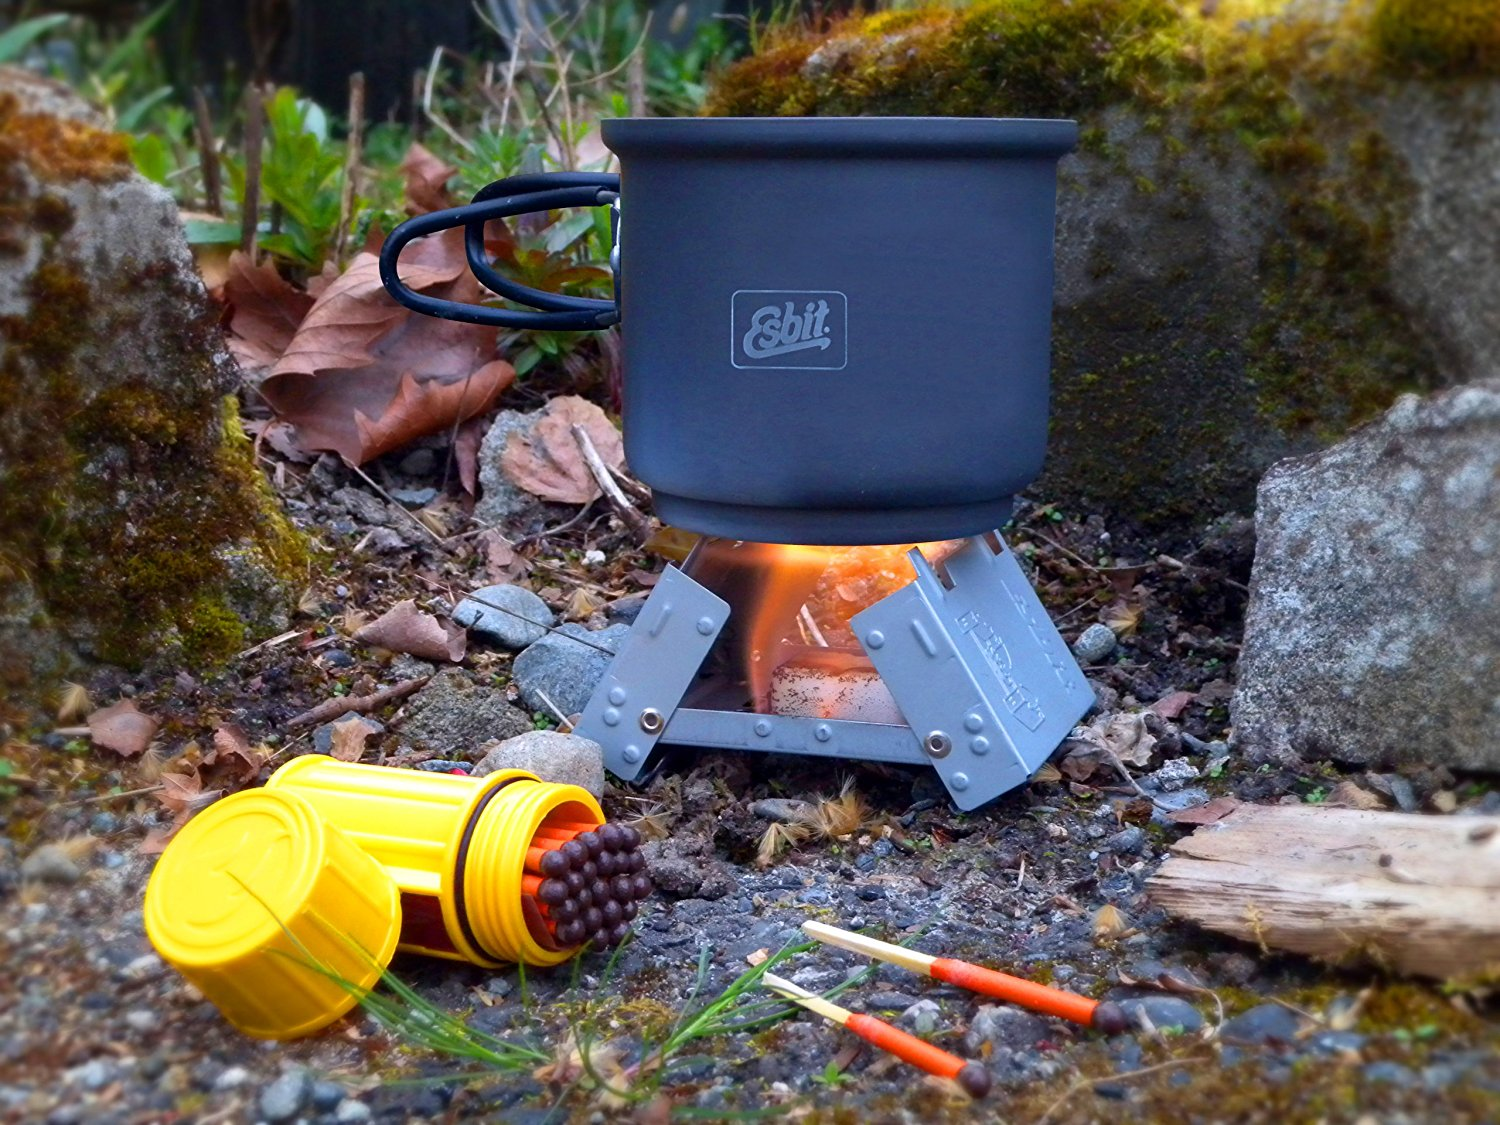 Esbit emergency stove solid fuel